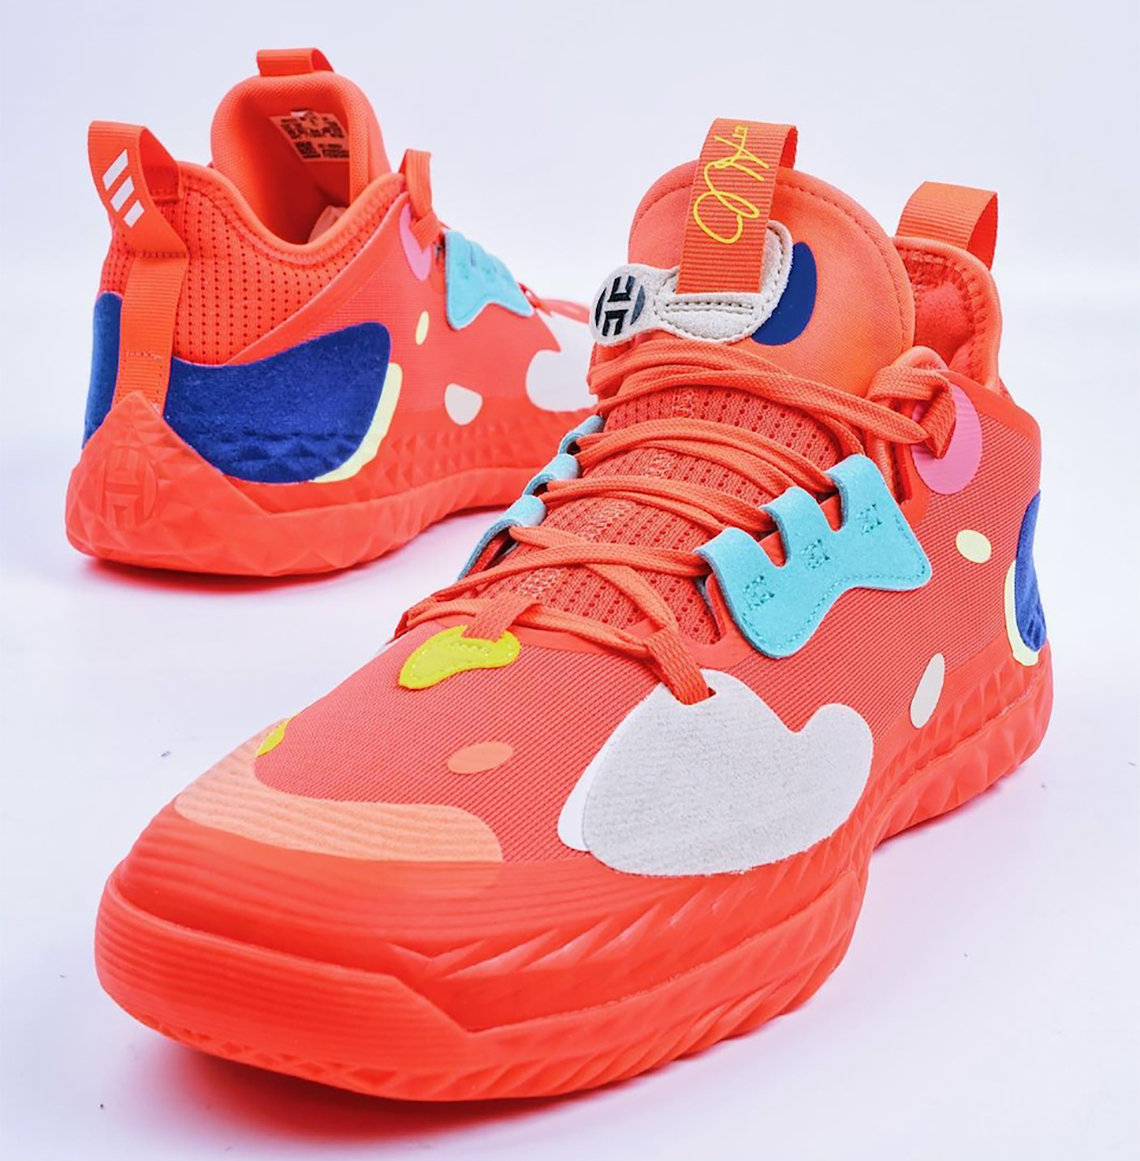 harden shoes canada